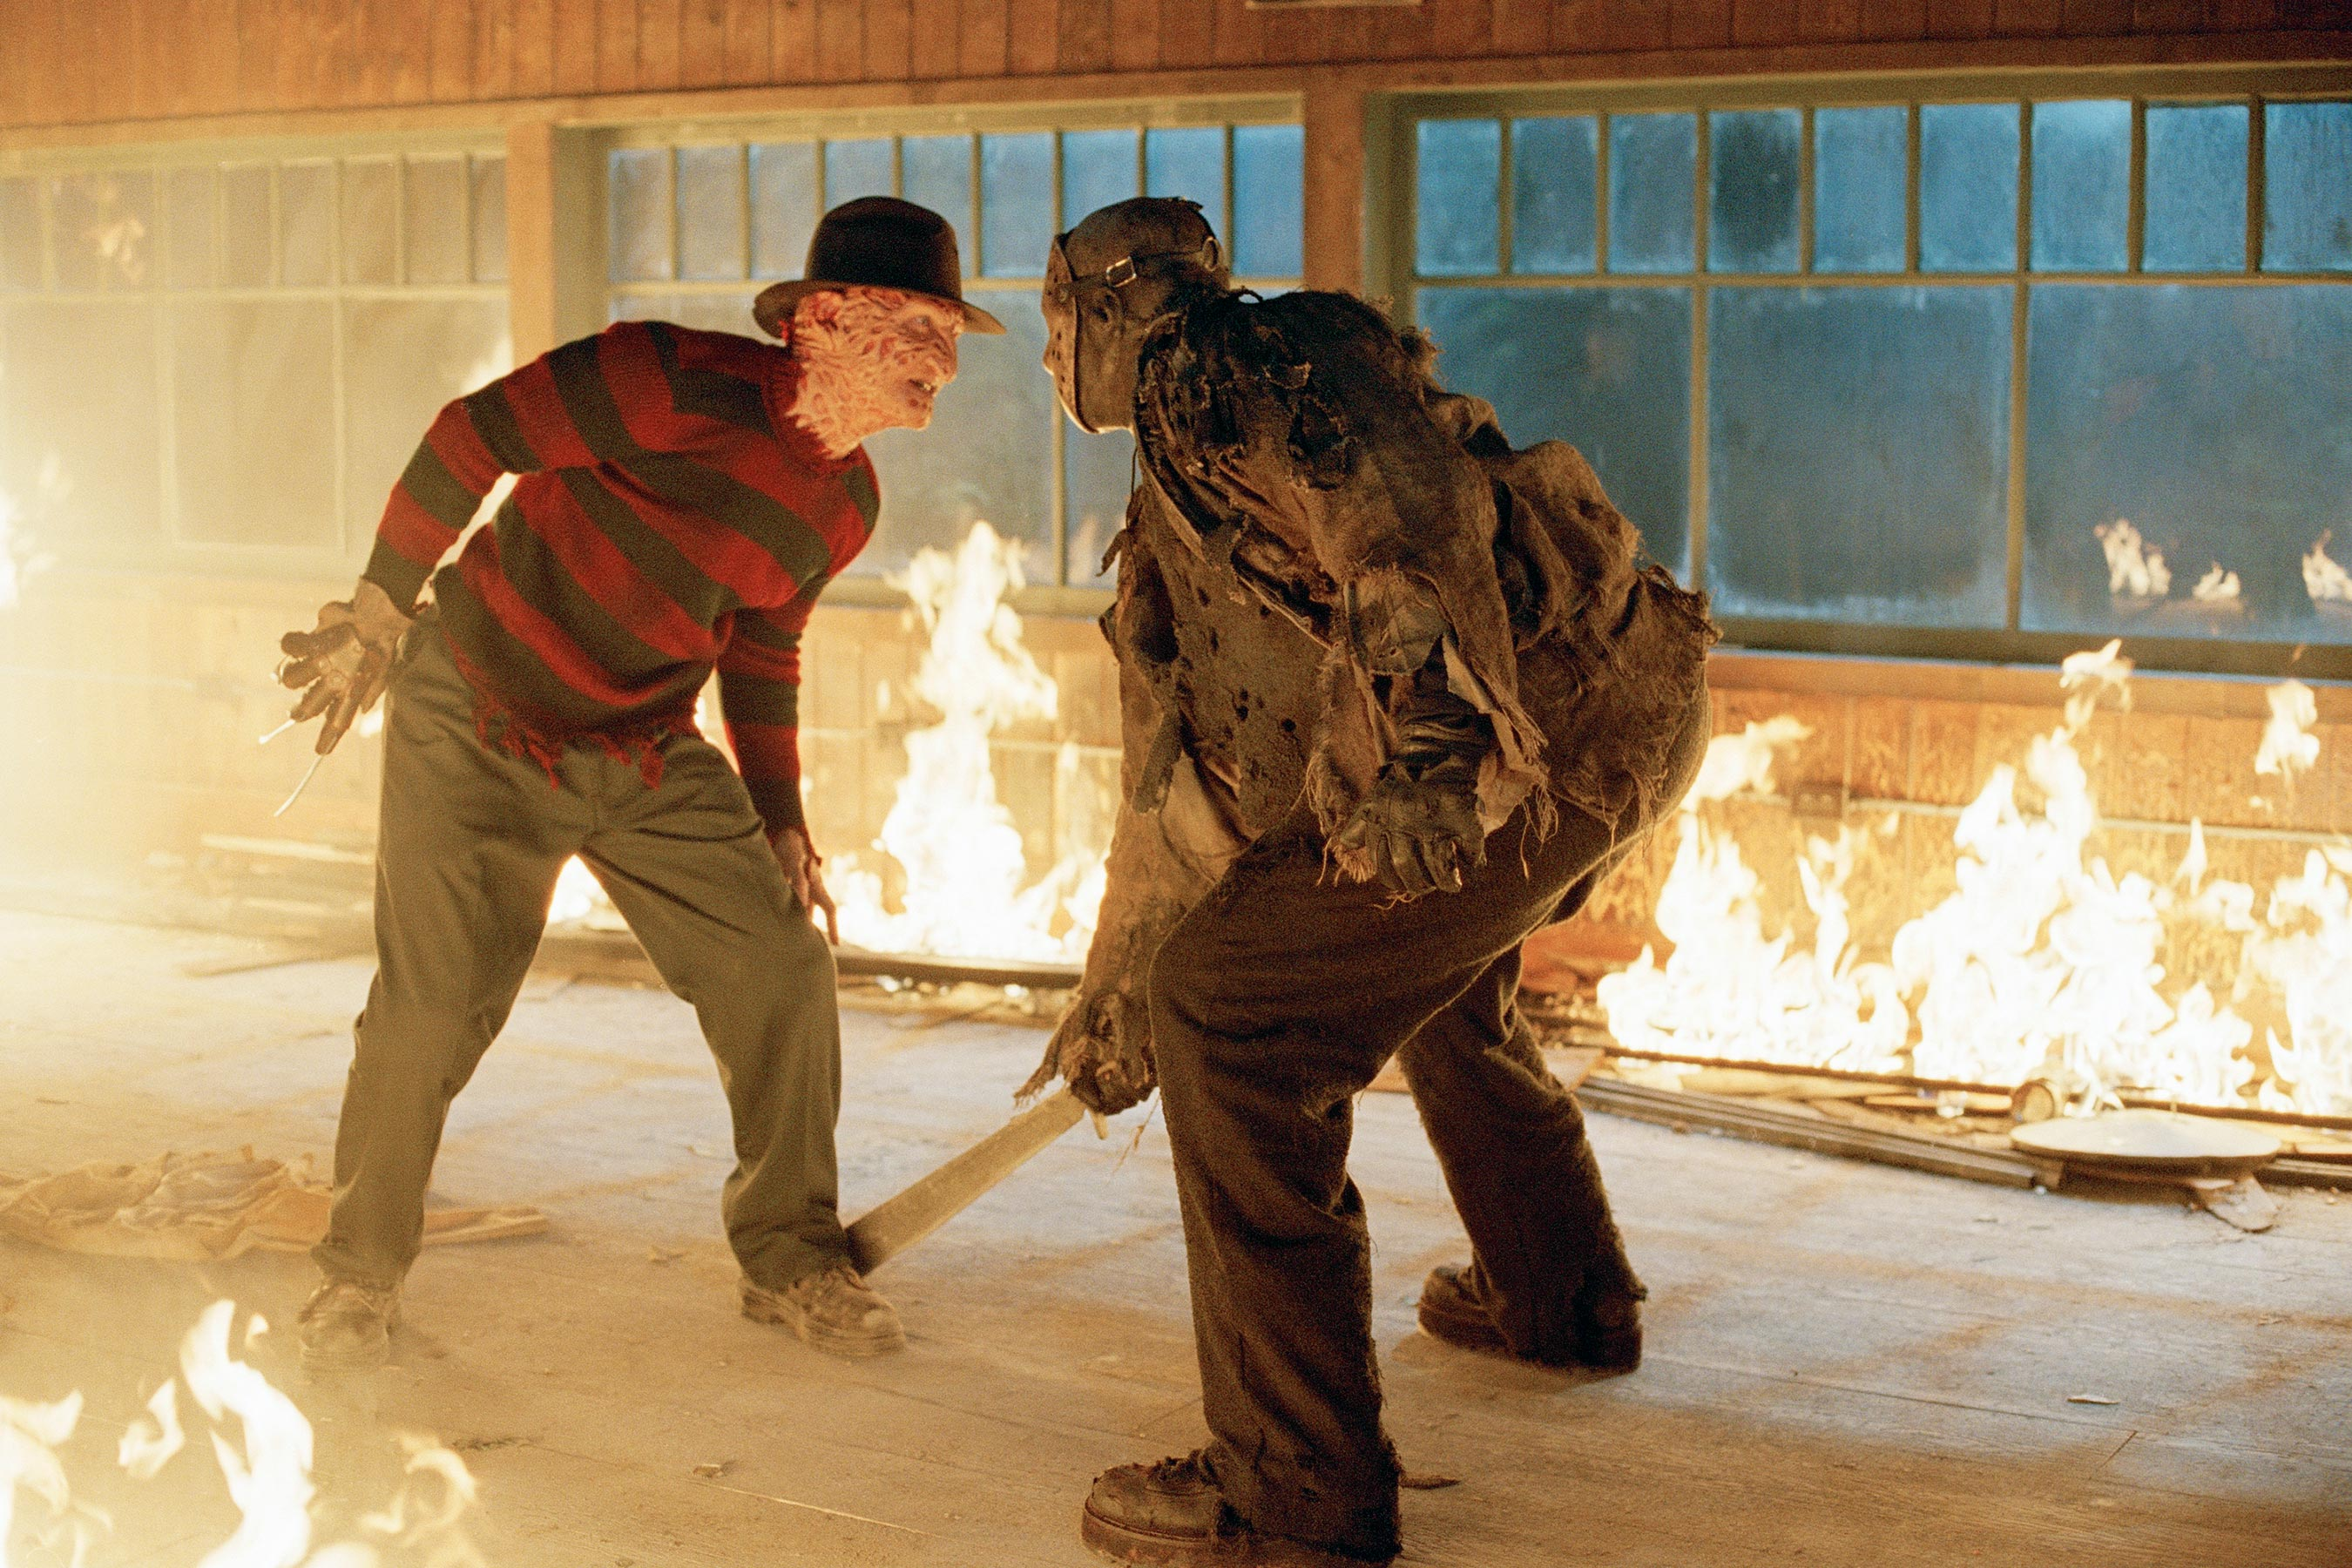 Climactic showdown between (l to r) Freddy (Robert Englund) and Jason (Ken Kirzinger) in Freddy vs. Jason (2003)